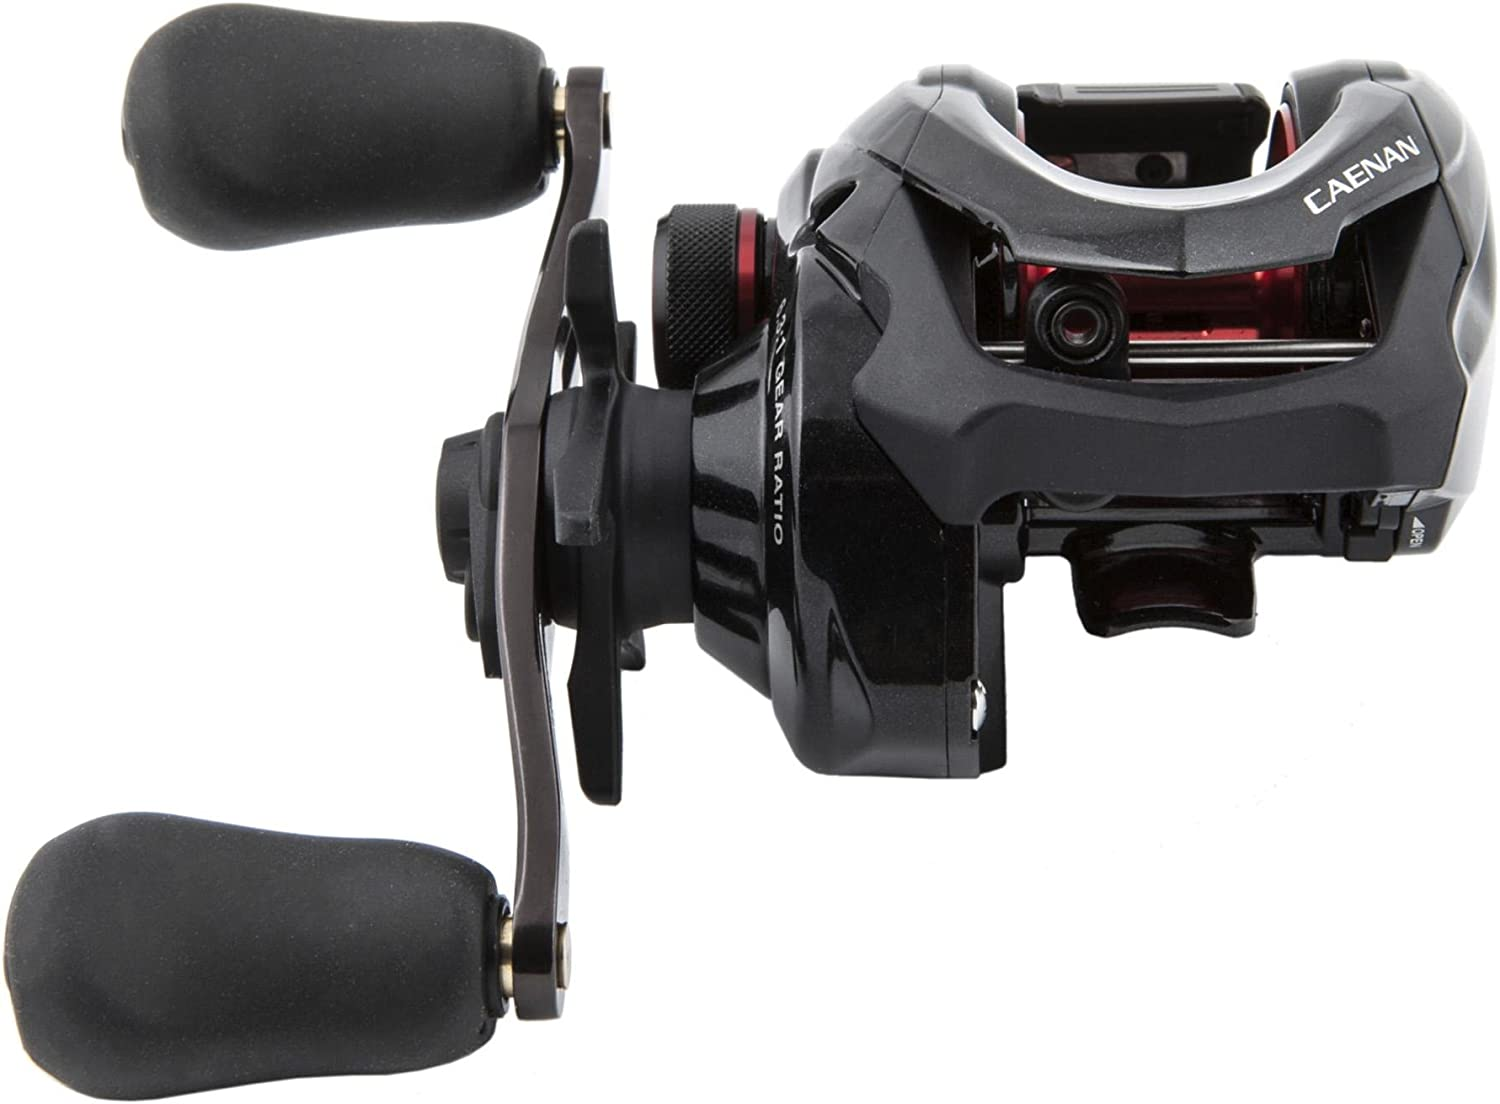 Shimano Caenan Low Profile Baitcast Reel 6.3 1 Gear Ratio, 70cm Retrieve Rate, 5kg Max Drag, Right Hand, Boxed